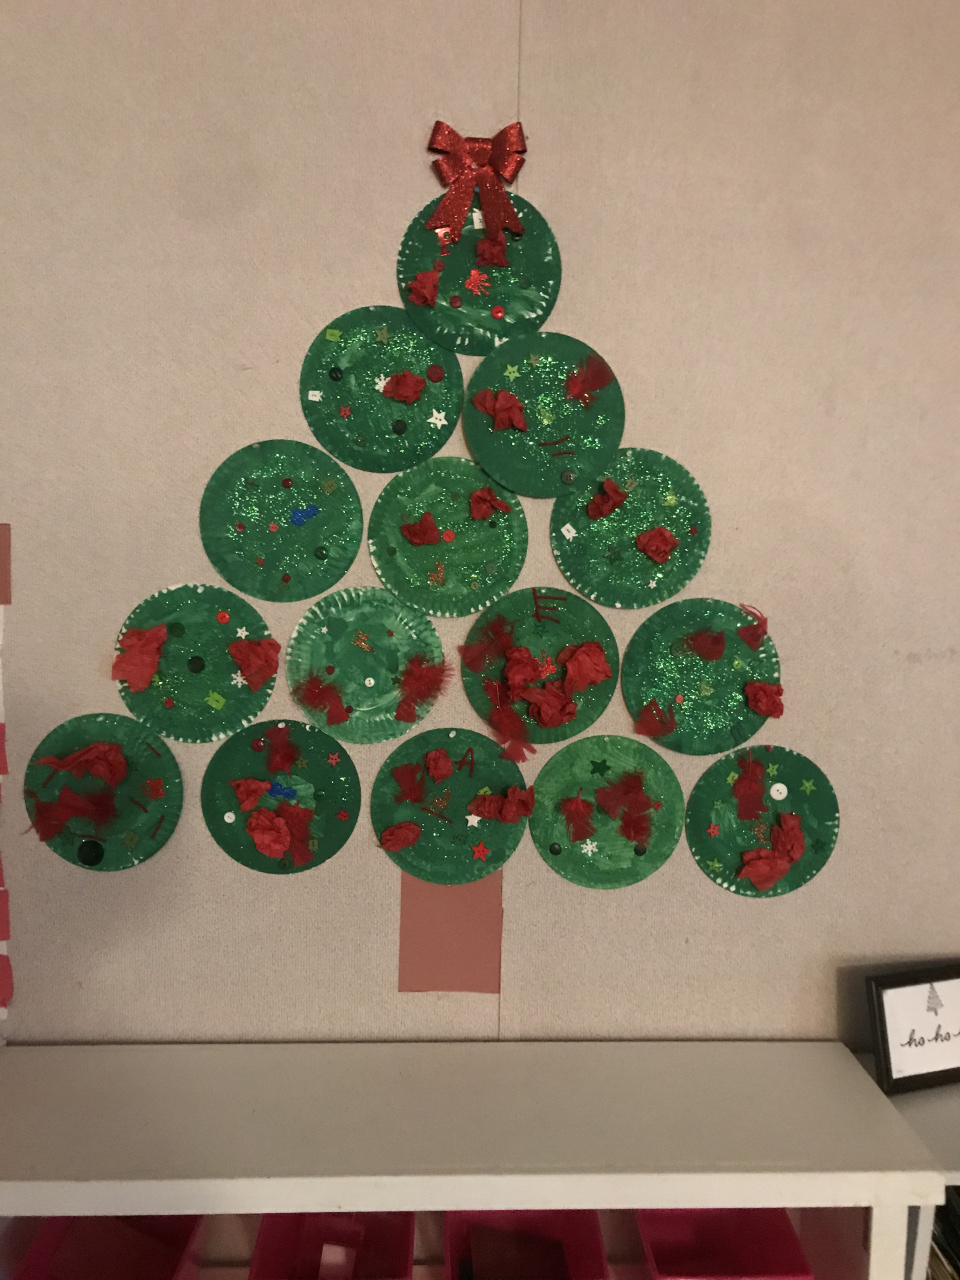 Christmas Tree made from Plates by 3's,4's, and 5's